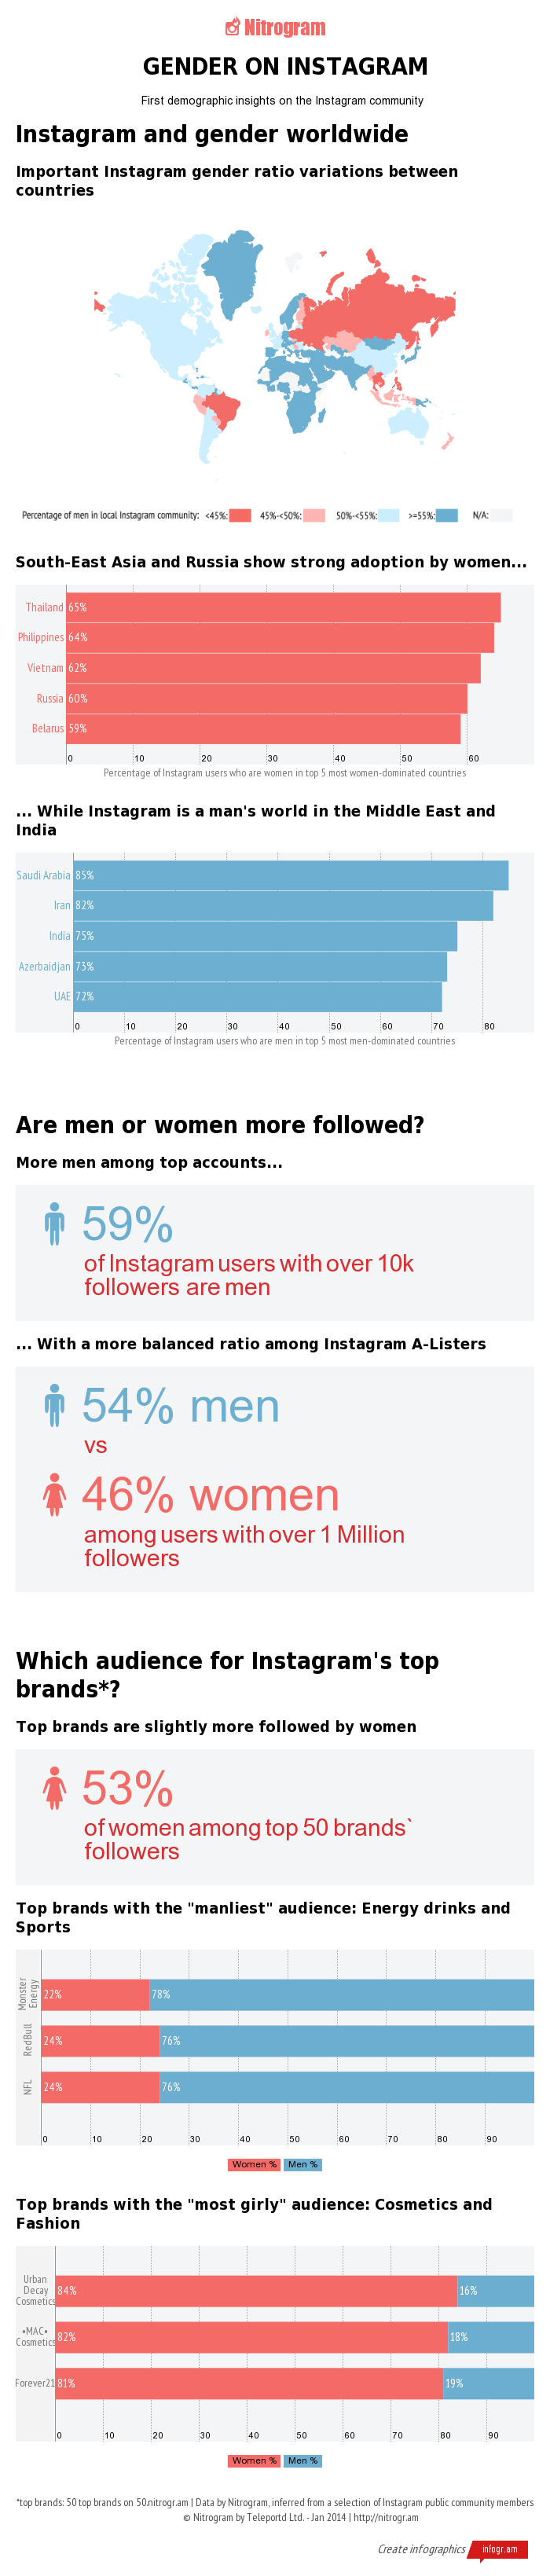 gender-on-instagram-infographic-by-nitrogram